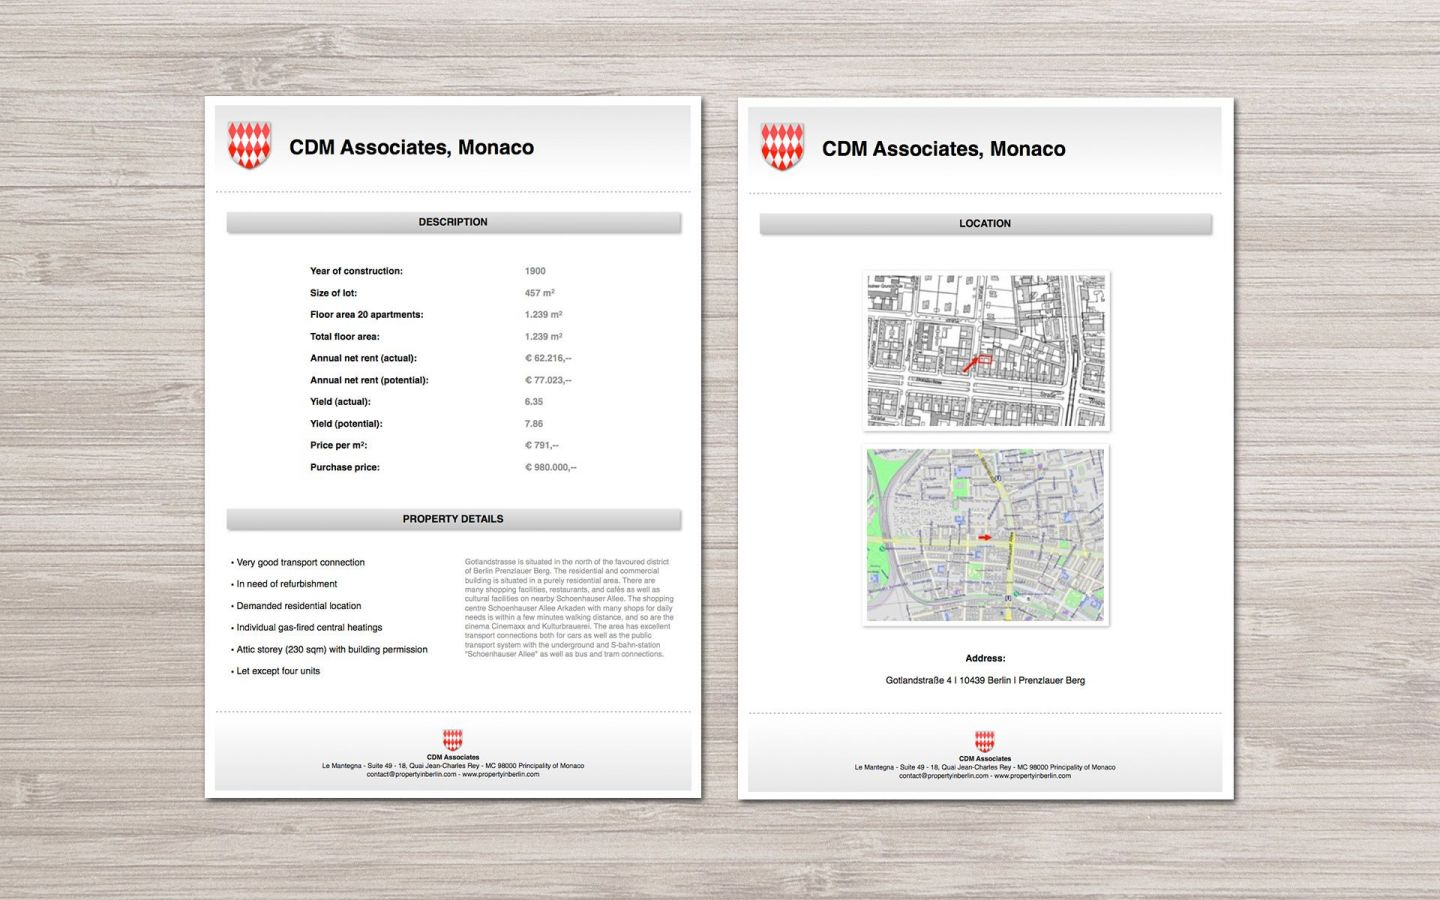 CDM Associates Branding Project by Crevisio